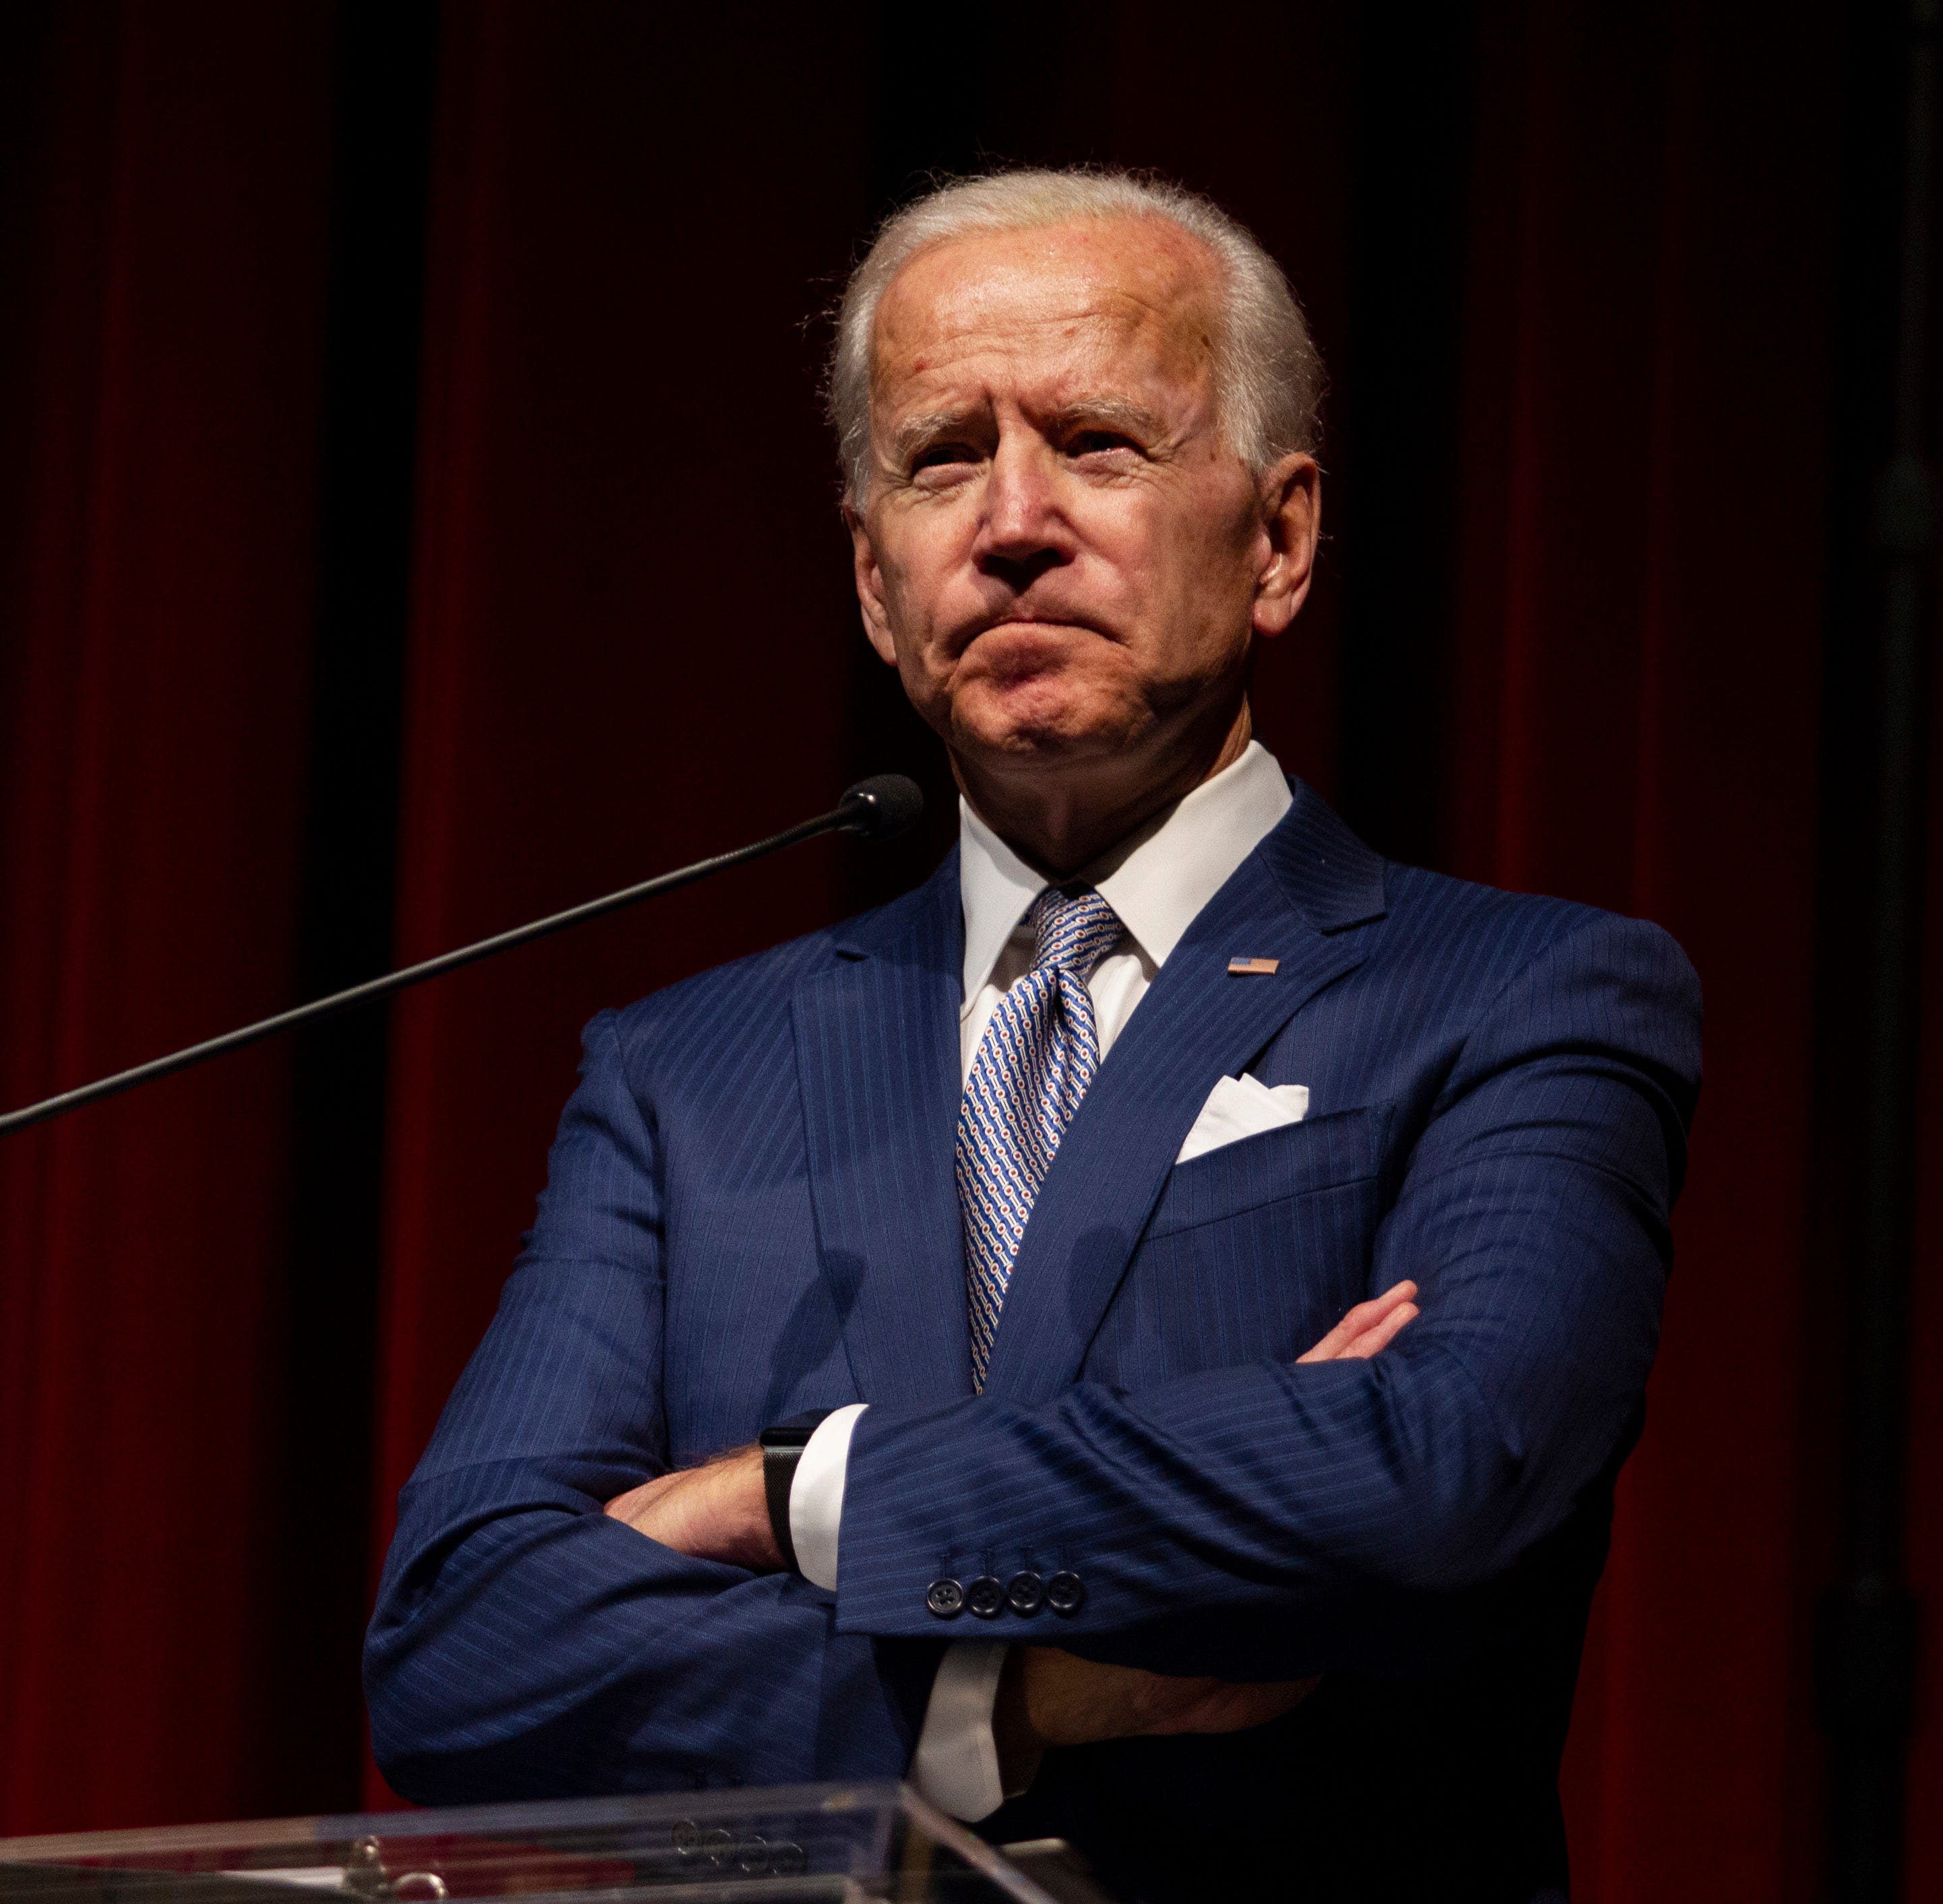 Joe Biden: 'I think I'm the most qualified person in the country to be president'